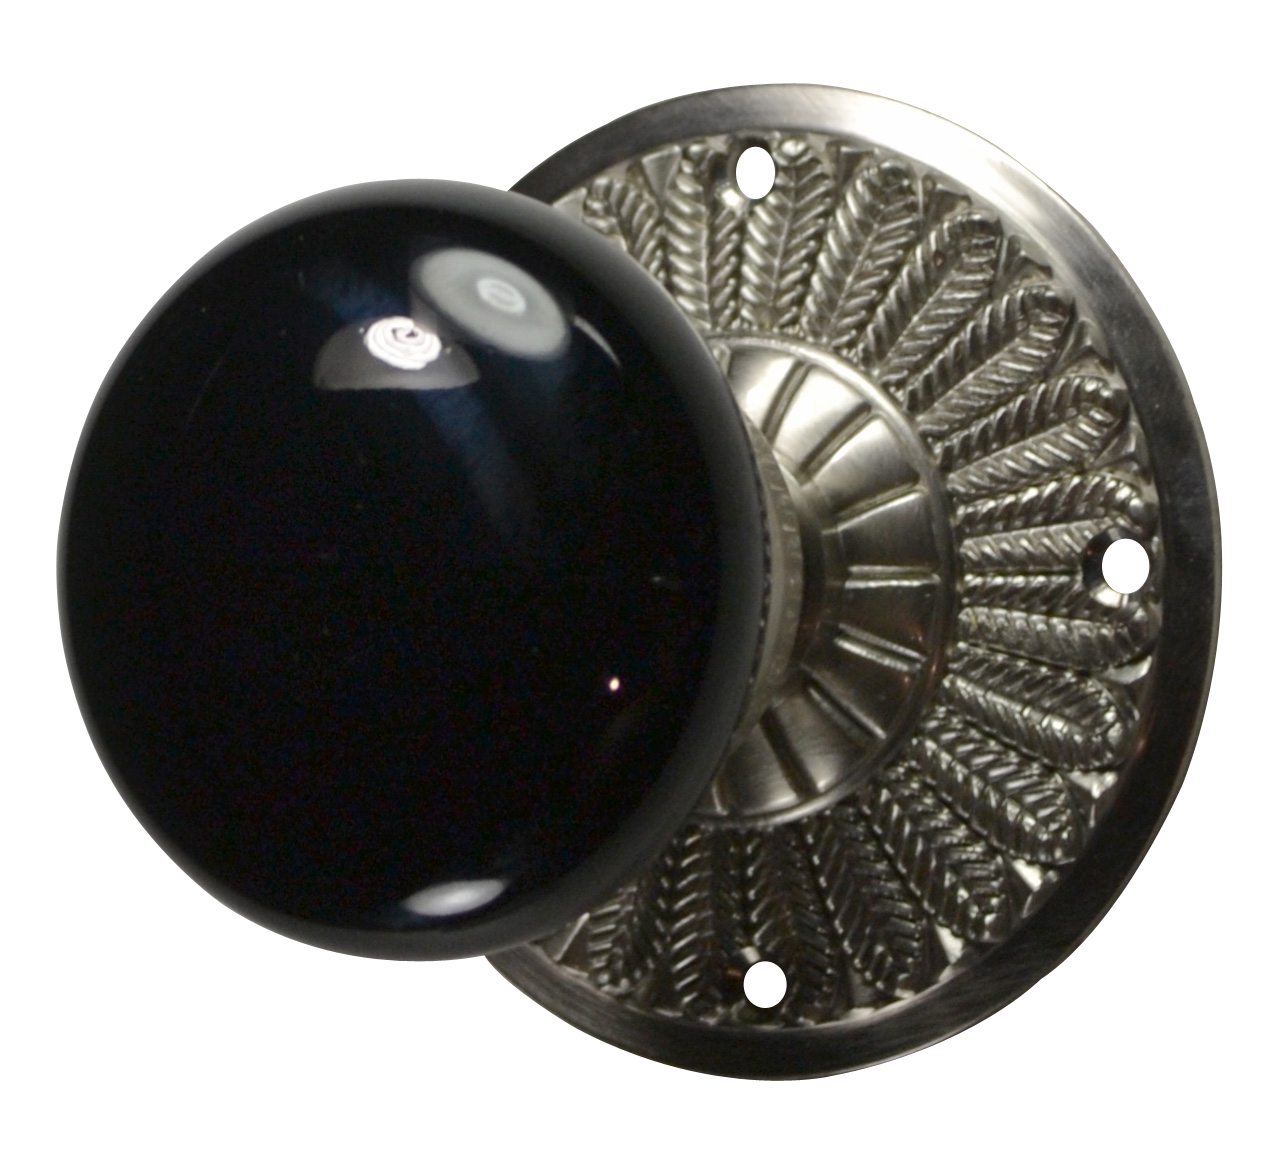 Feathers Black Porcelain Door Knob (Brushed Nickel Finish)